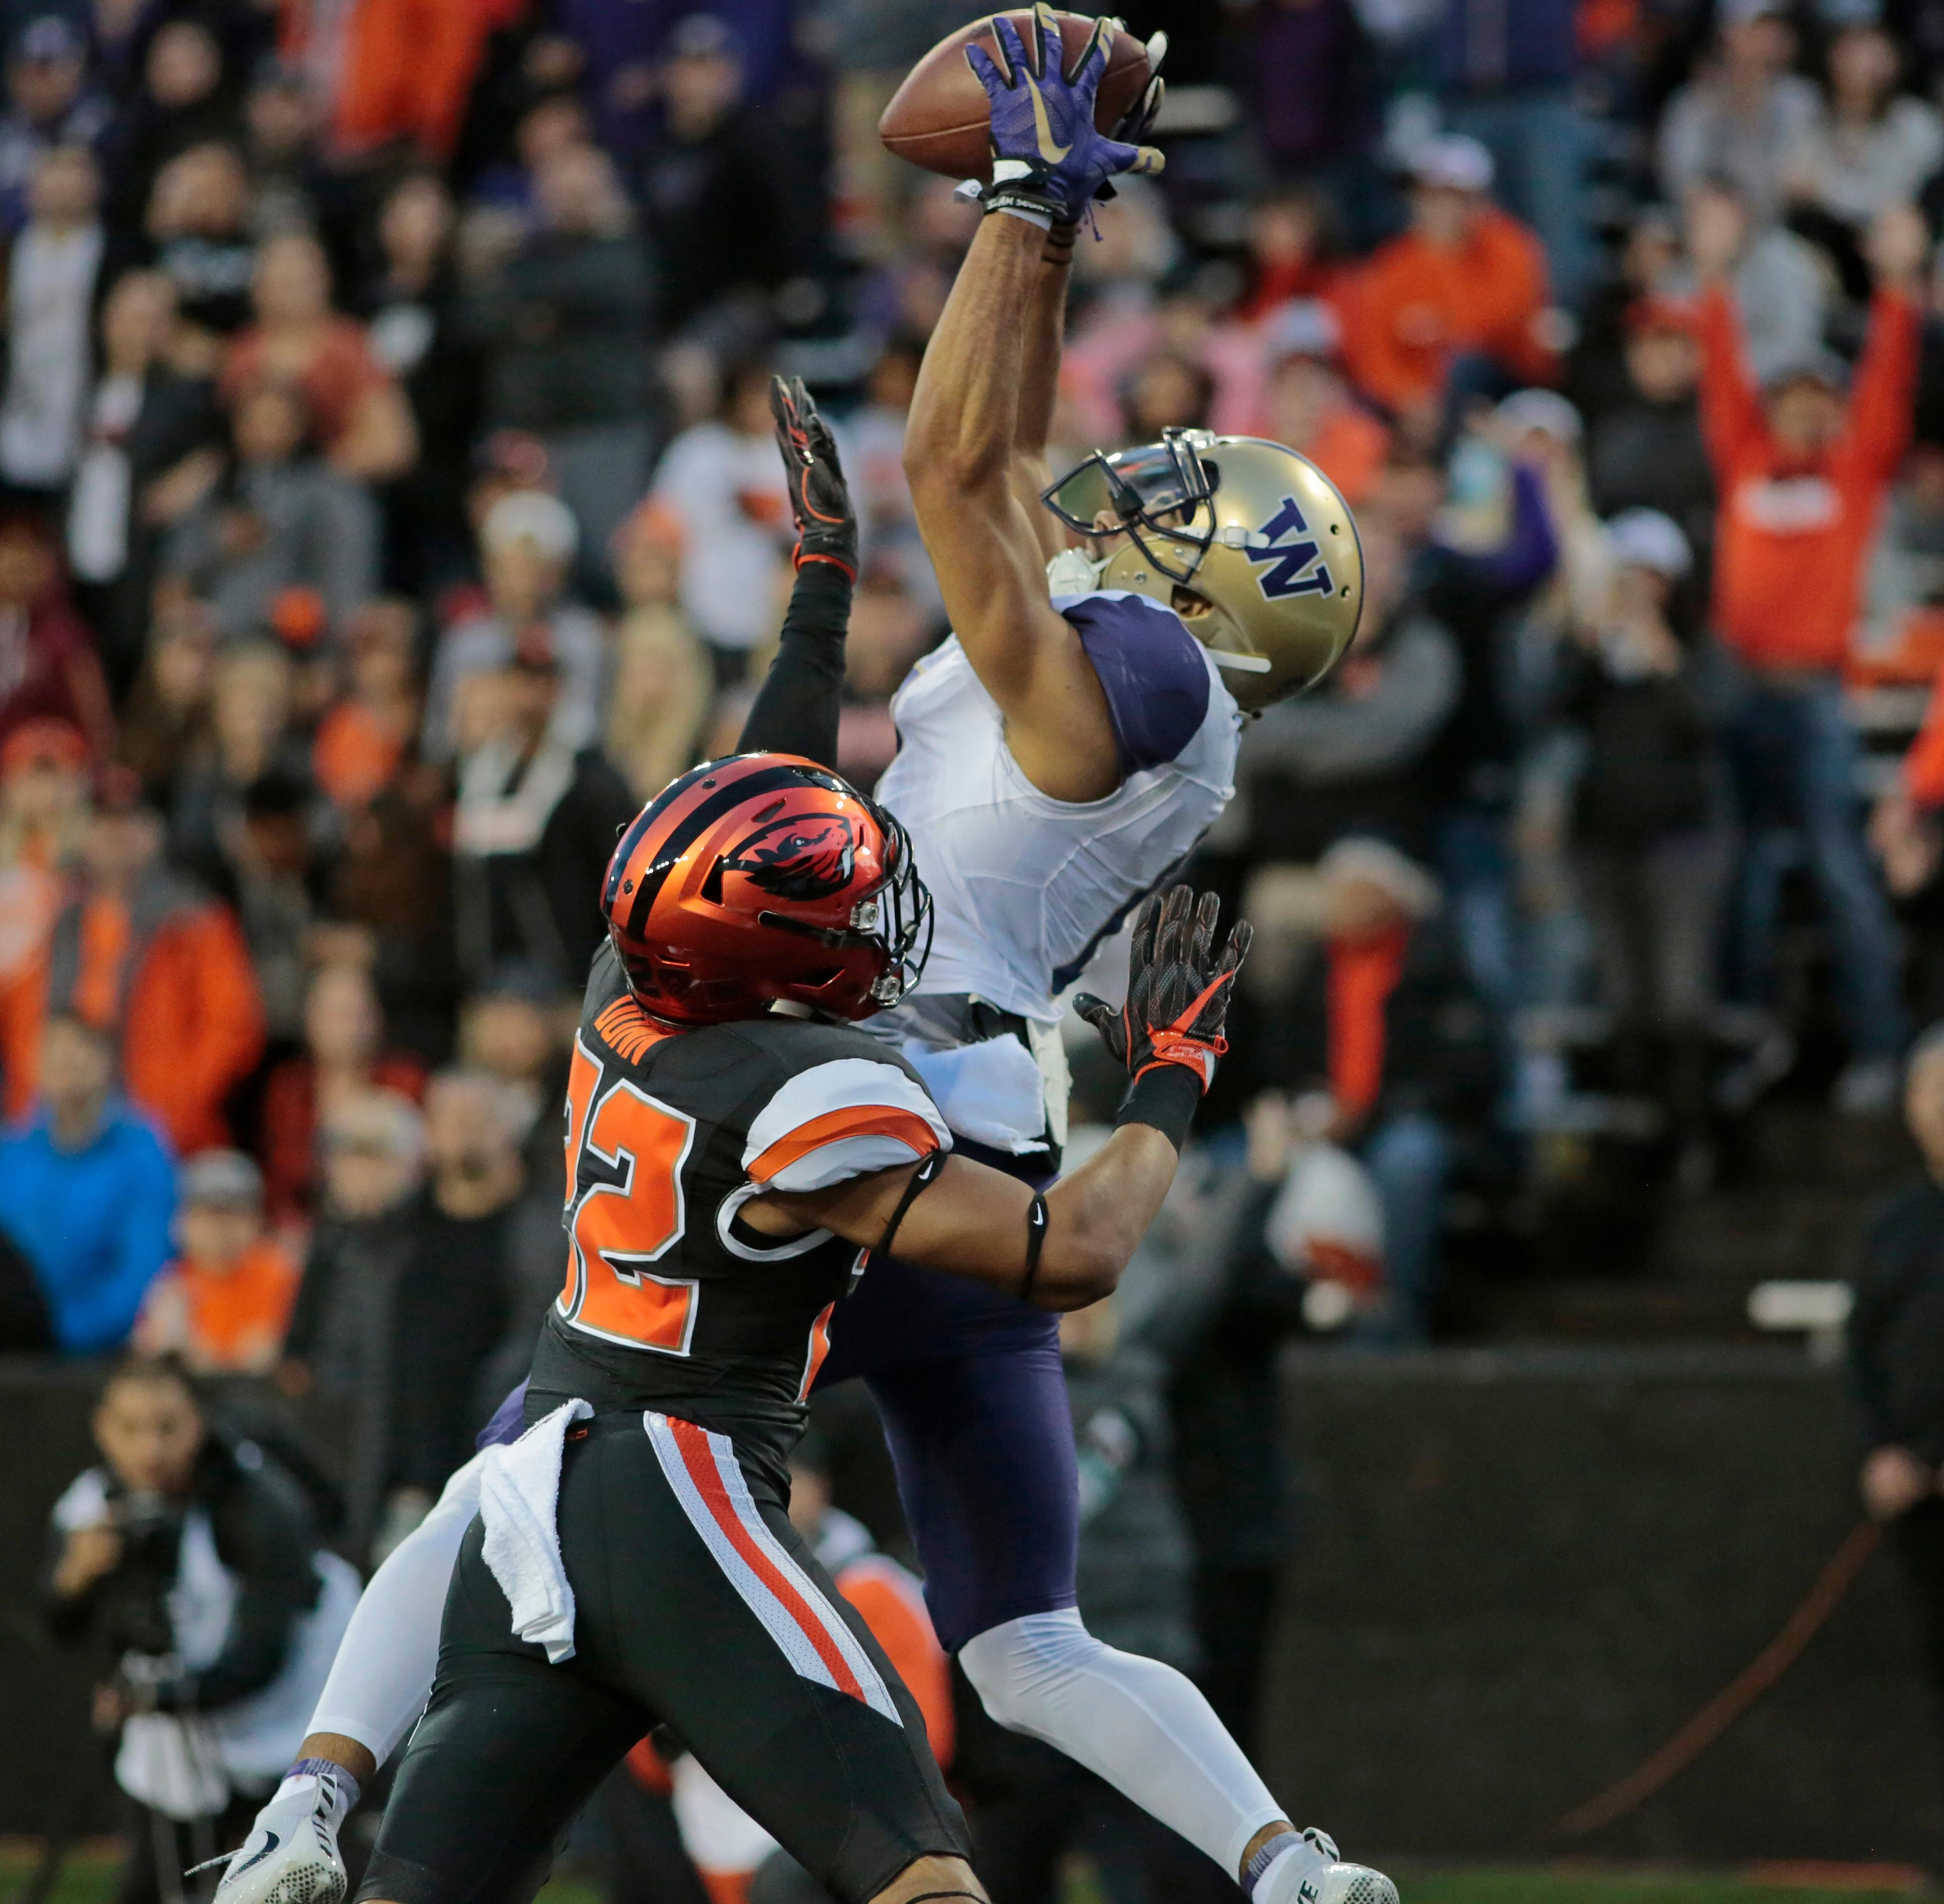 Washington wide receiver Dante Pettis (8) goes high over Oregon State's Isaiah Dunn (22) for a touchdown in the second half of an NCAA college football game, in Corvallis, Ore., Saturday, Sept. 30, 2017. Washington won 42-7. (AP Photo/Timothy J. Gonzalez)